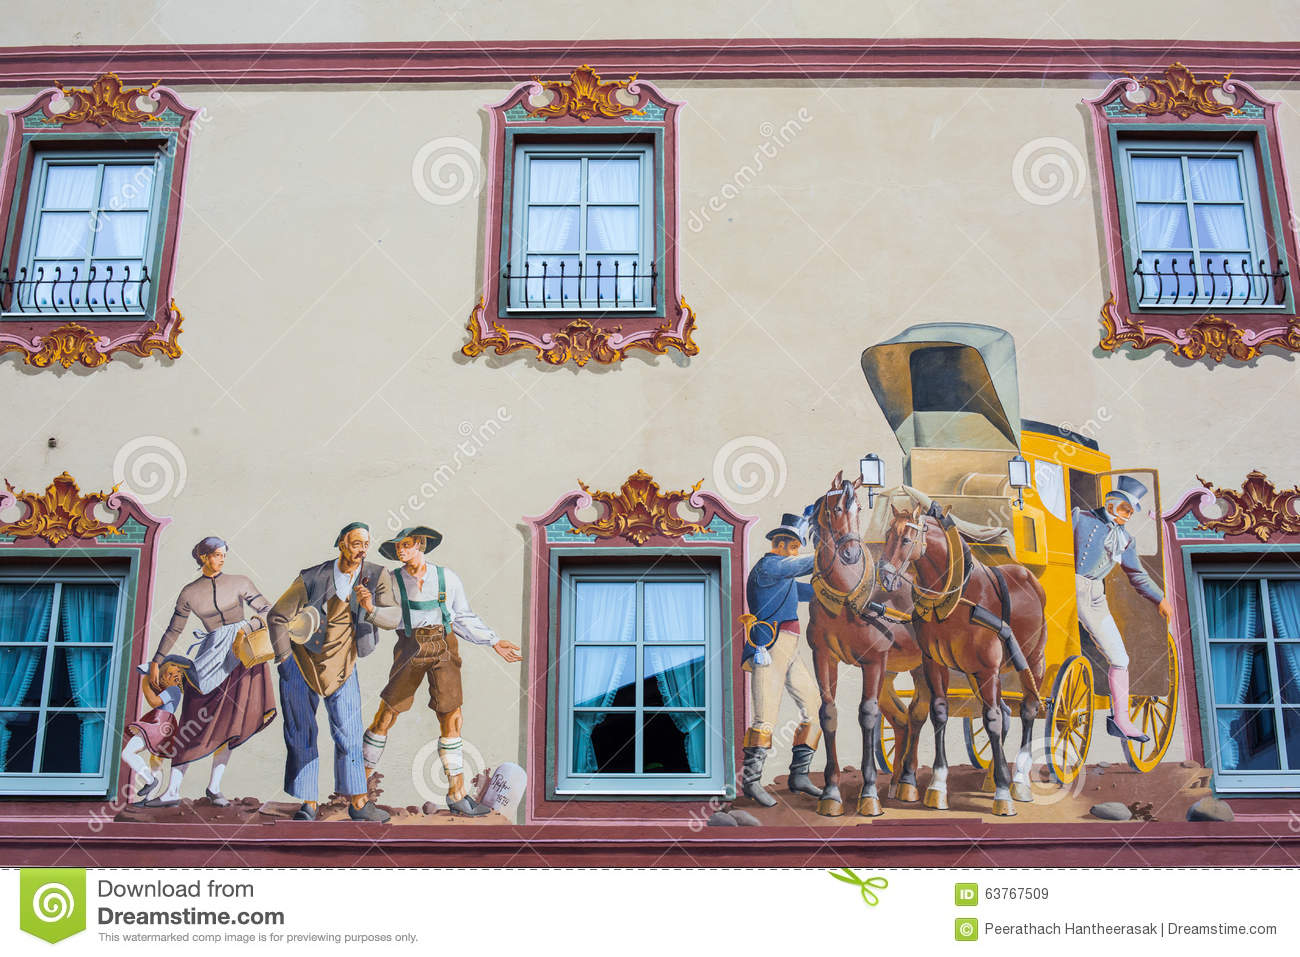 House Painting on The Wall - Mittenwald, Germany